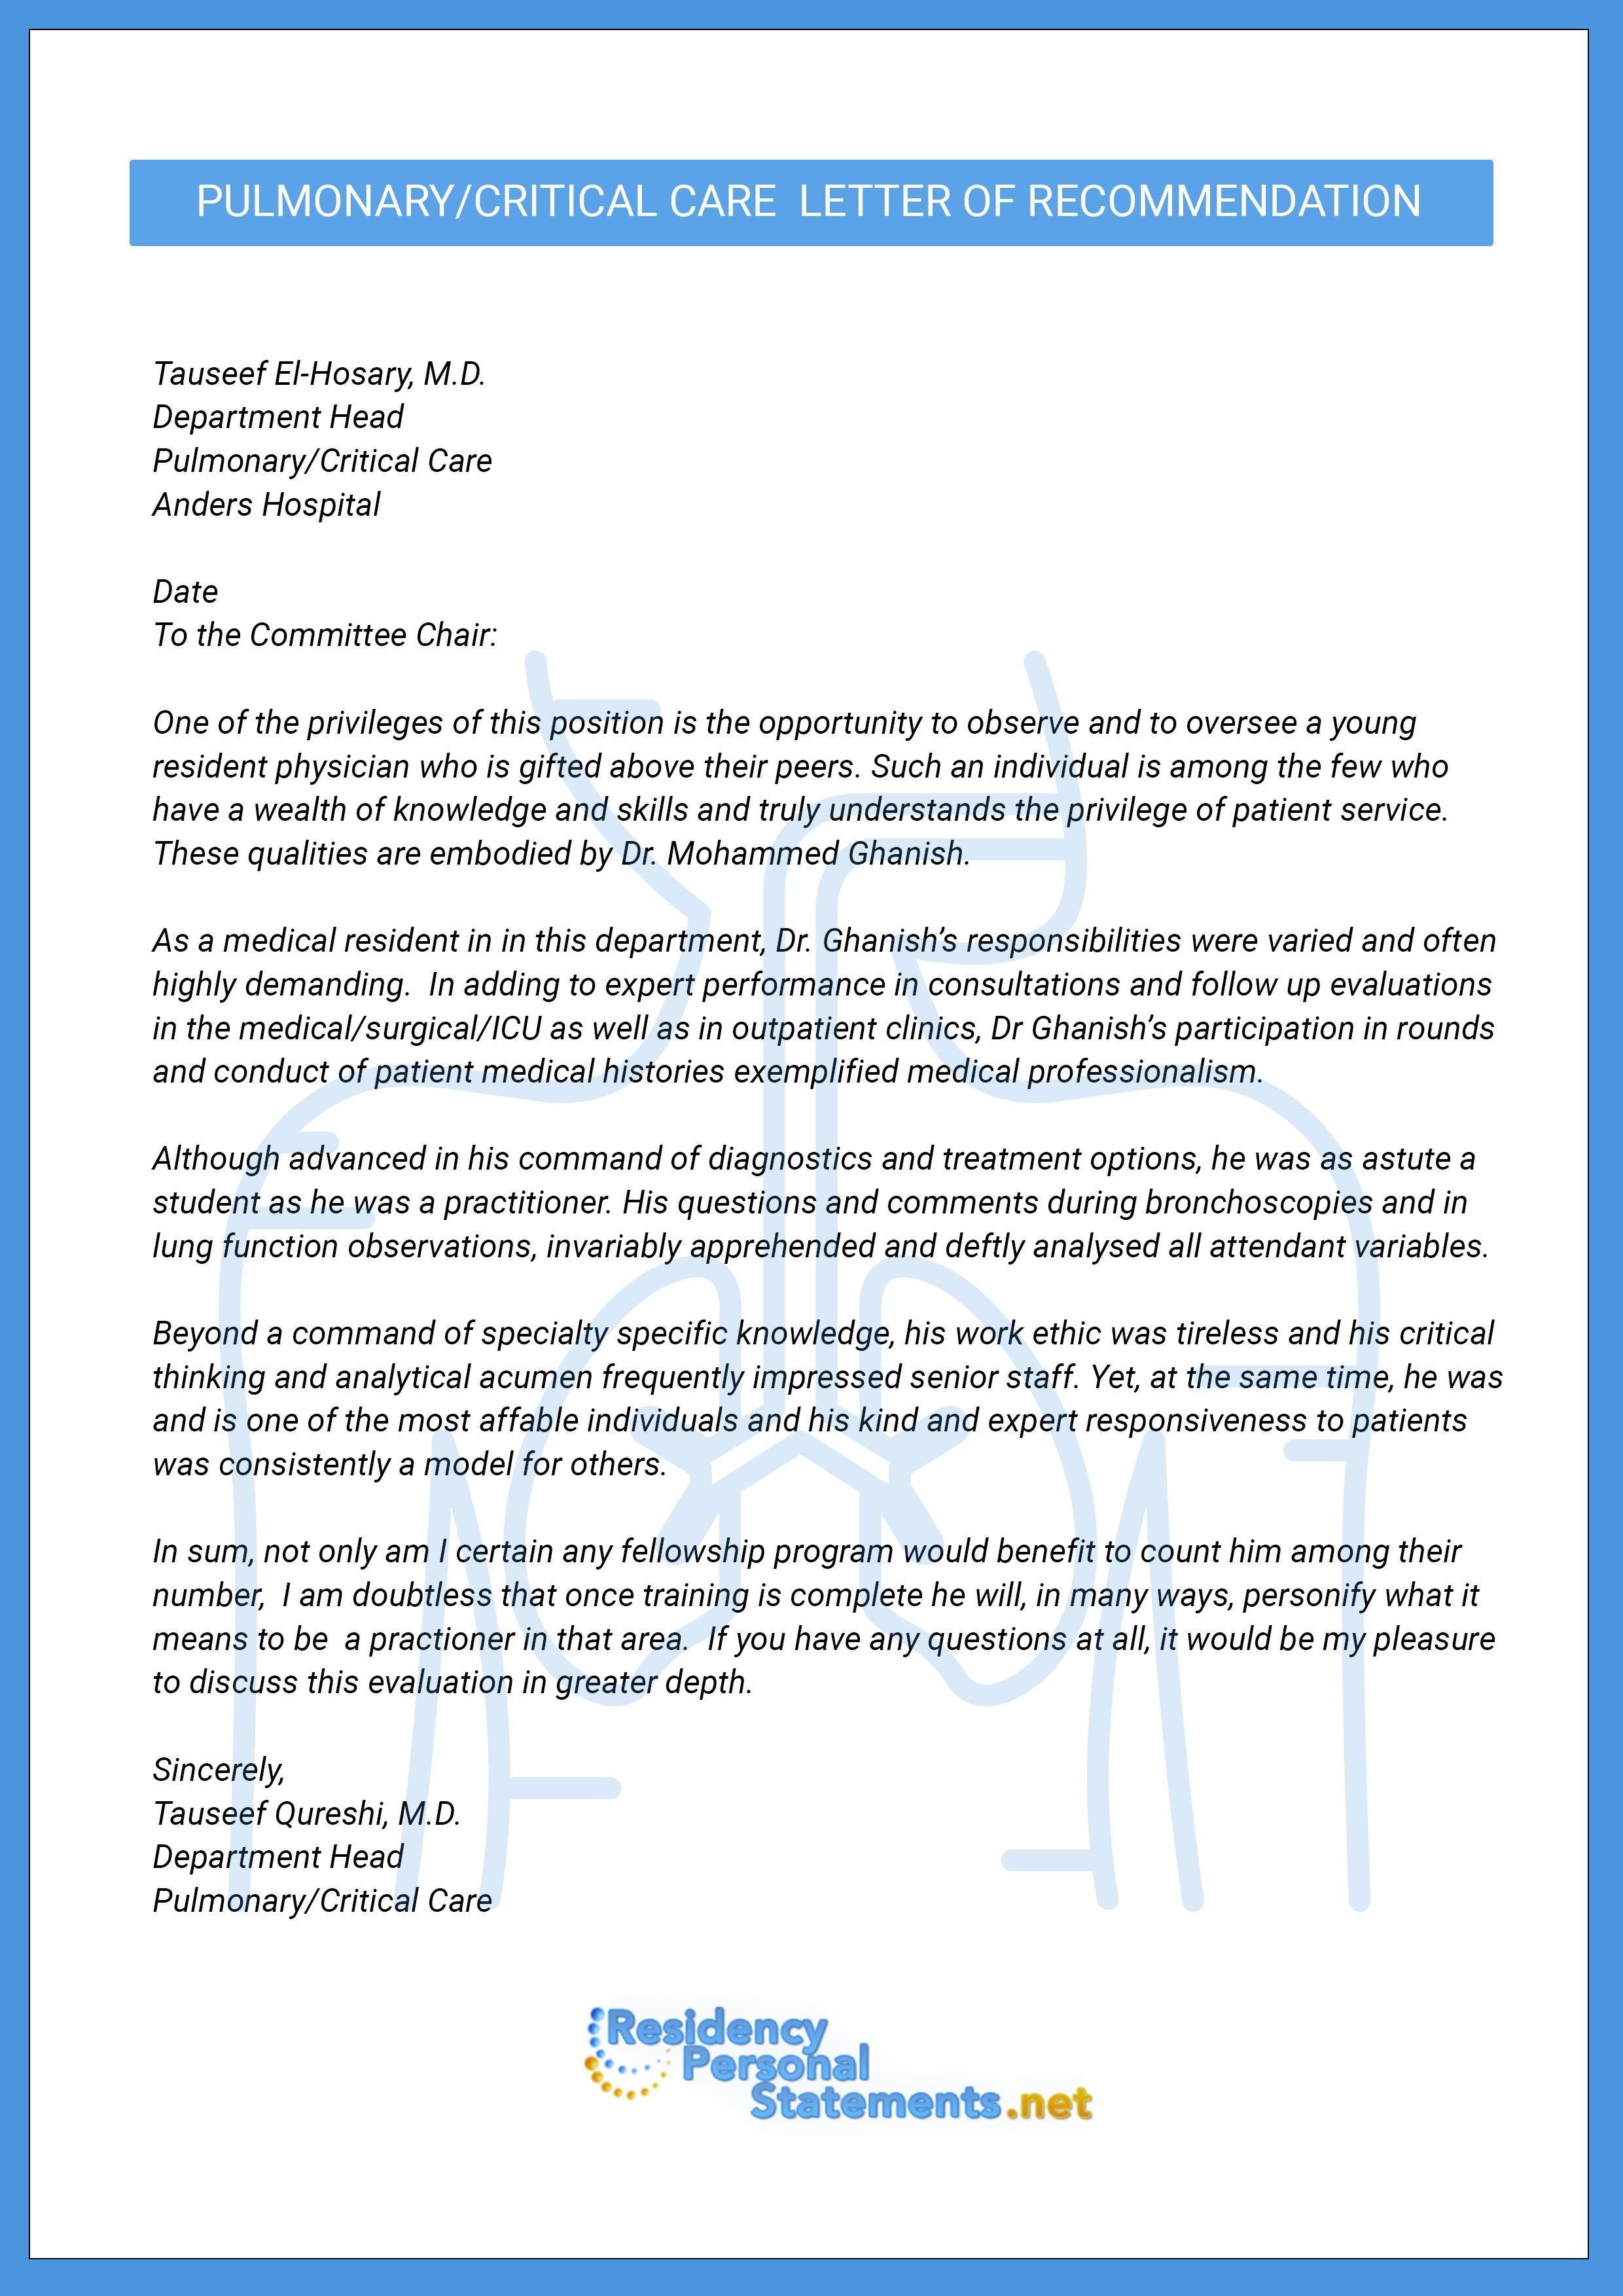 Residency Recommendation Letter Sample New Of Re Mendation For Medical Fellowship A Word Lettering Pulmonary Critical Care Personal Statement